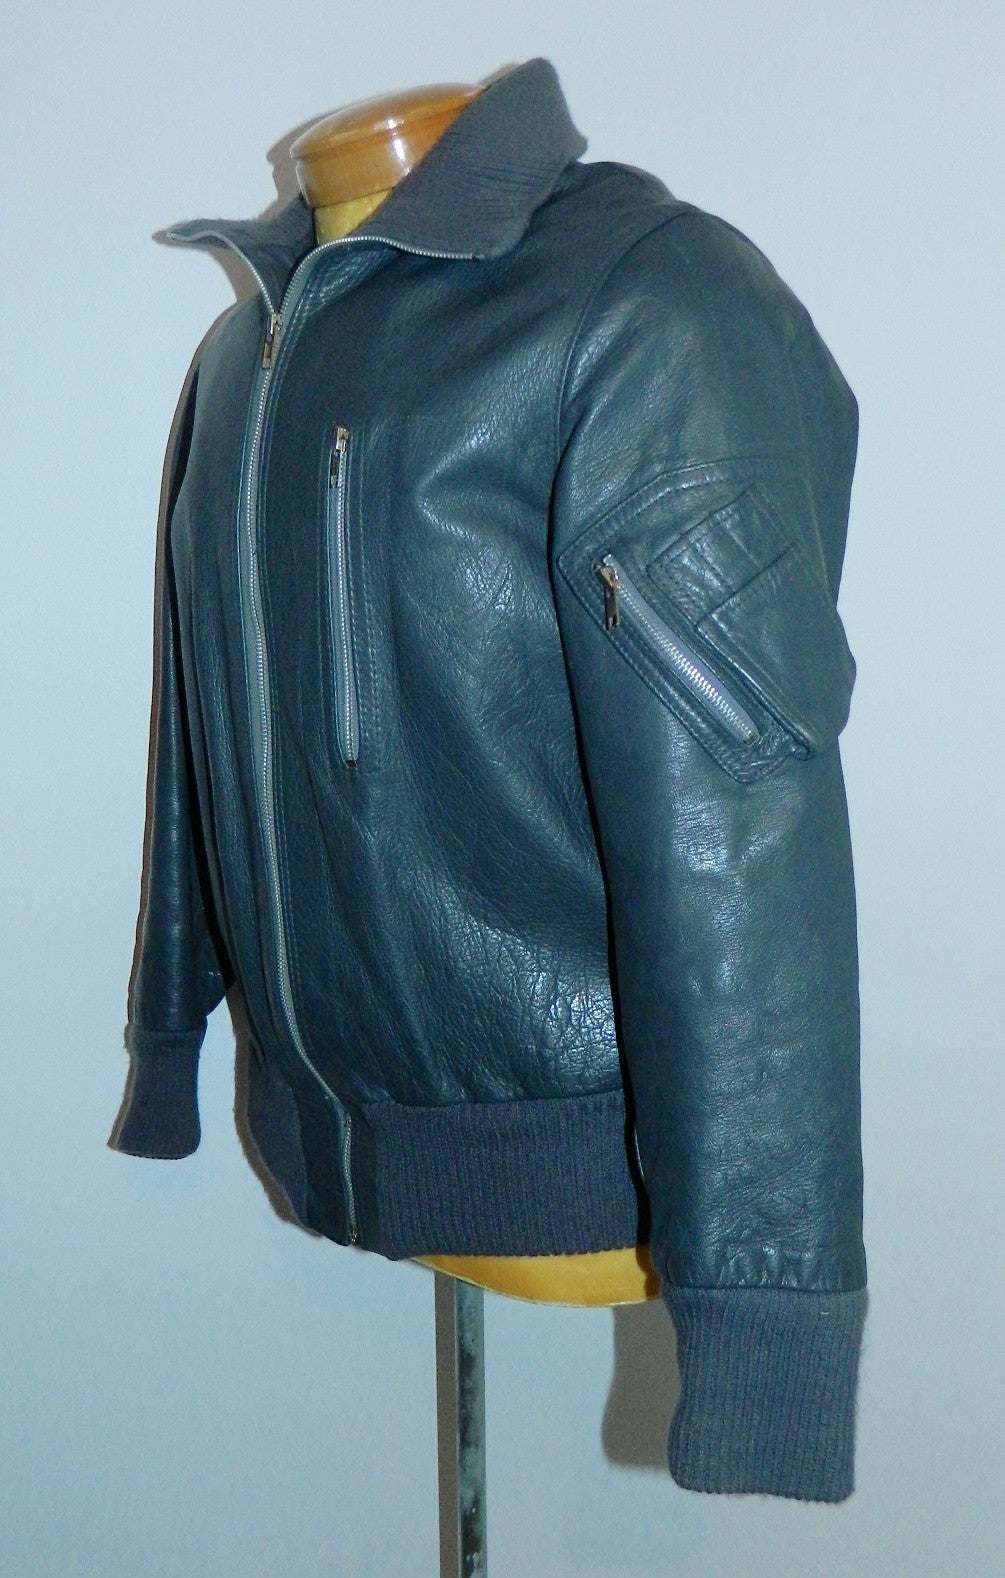 vintage 1970s German Luftwaffe leather jacket gray leather flight jacket pilot EU 50